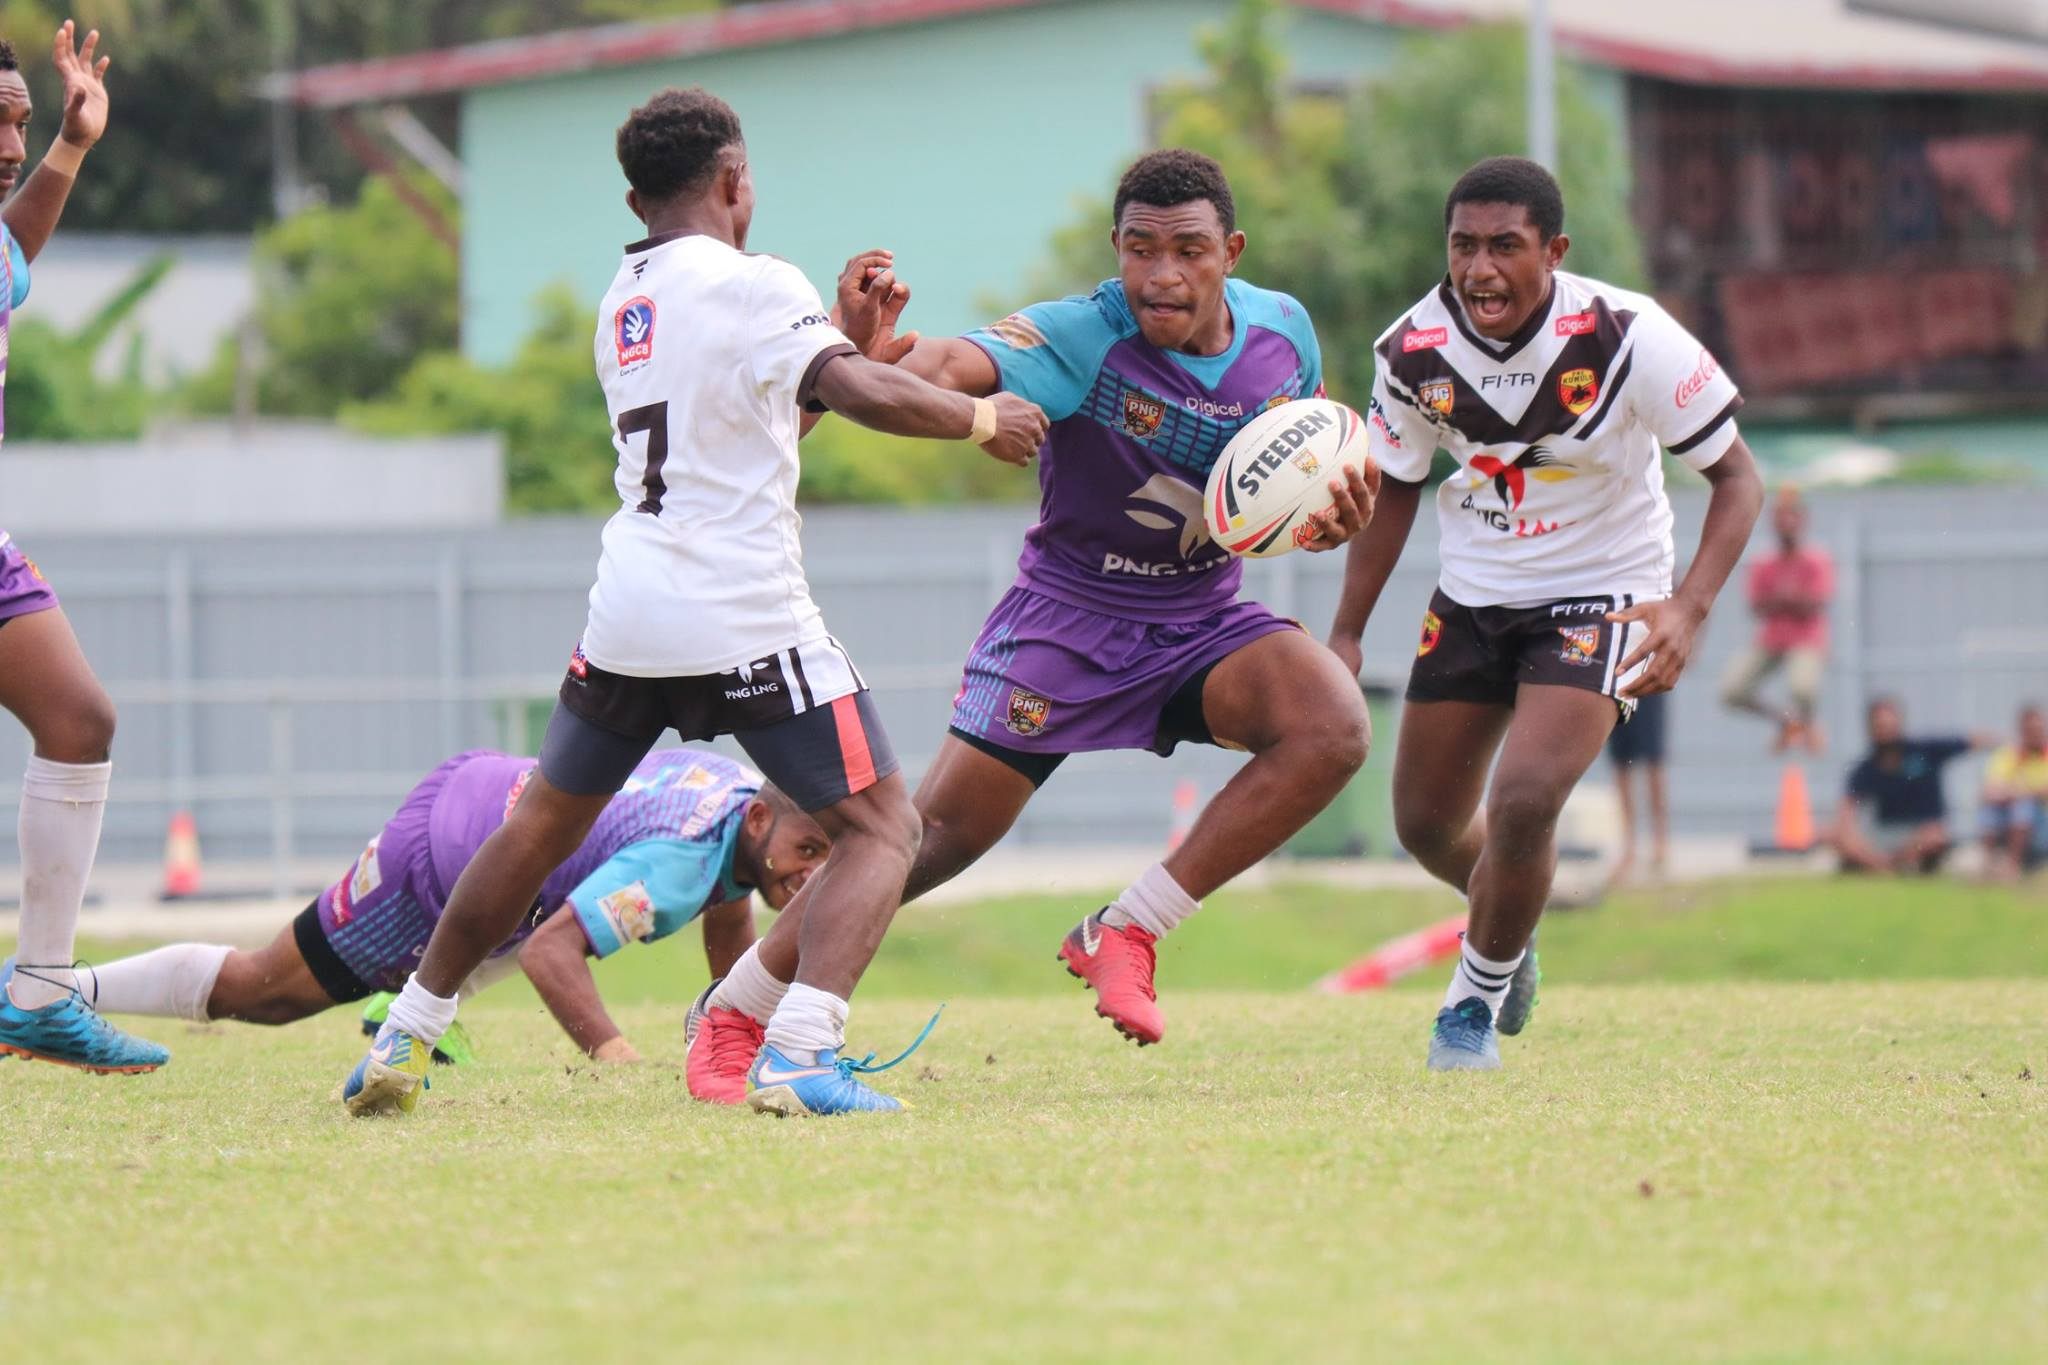 Dates announced for inaugural National Schools Championship